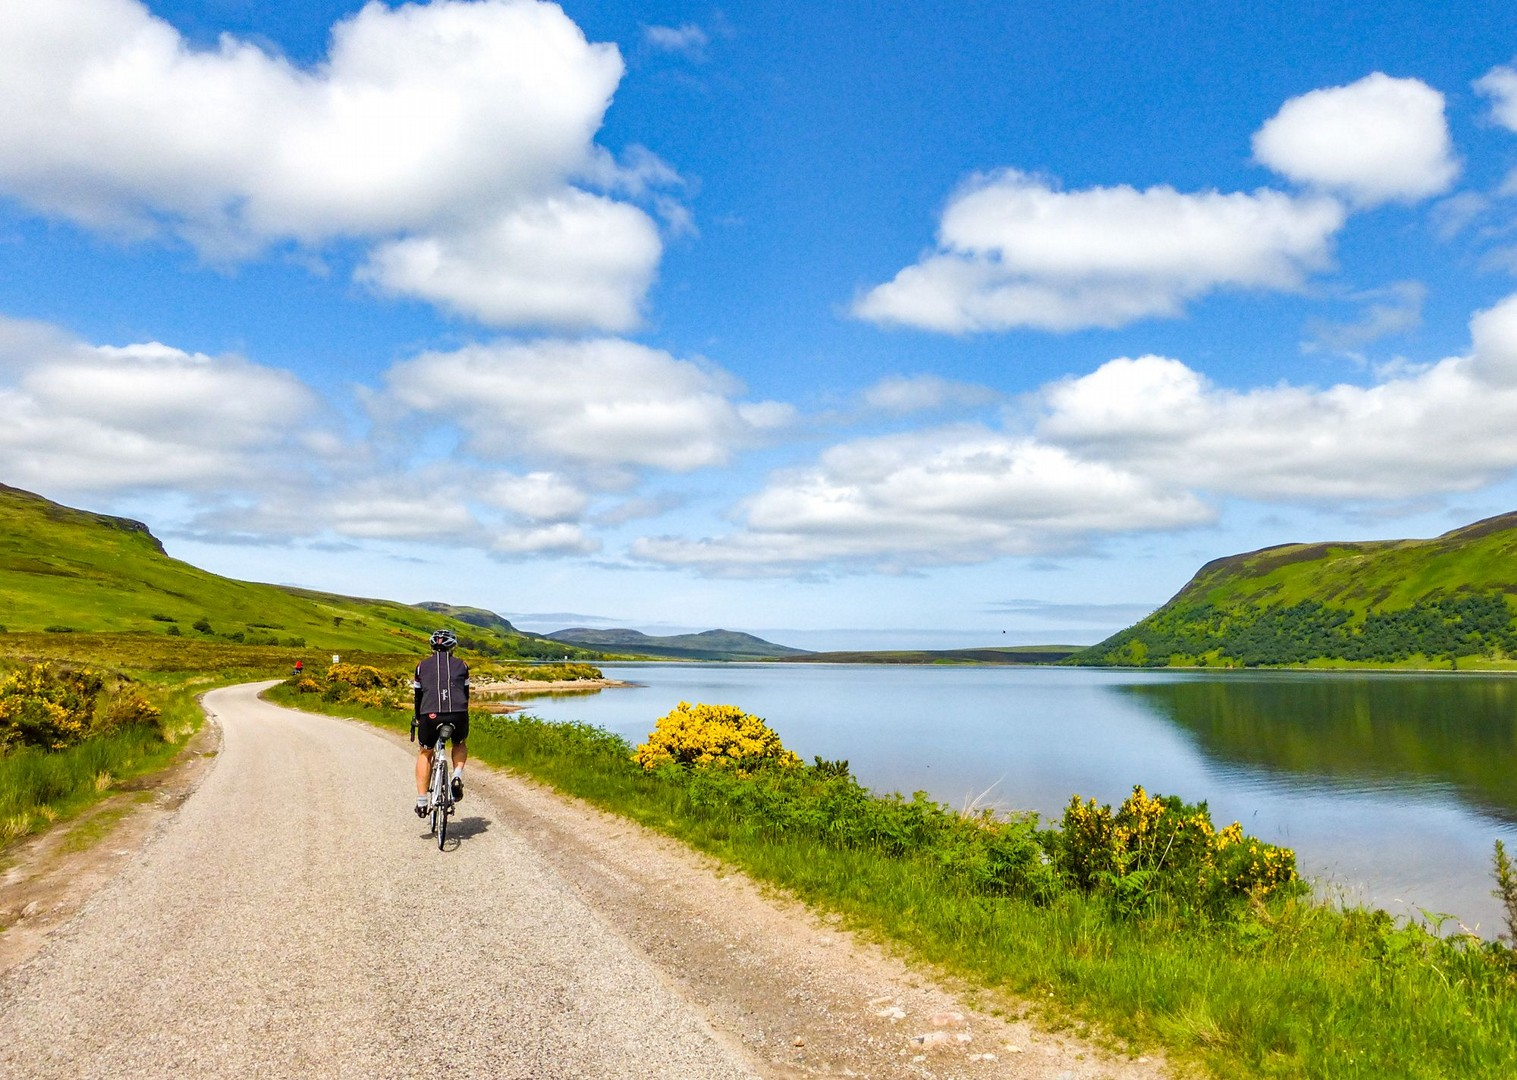 cycling-guided-road-holiday-lejog-route-3-weeks-with-saddle-skedaddle-uk.jpg - UK - Land's End to John O'Groats Explorer (22 days) - Guided Cycling Holiday - Leisure Cycling